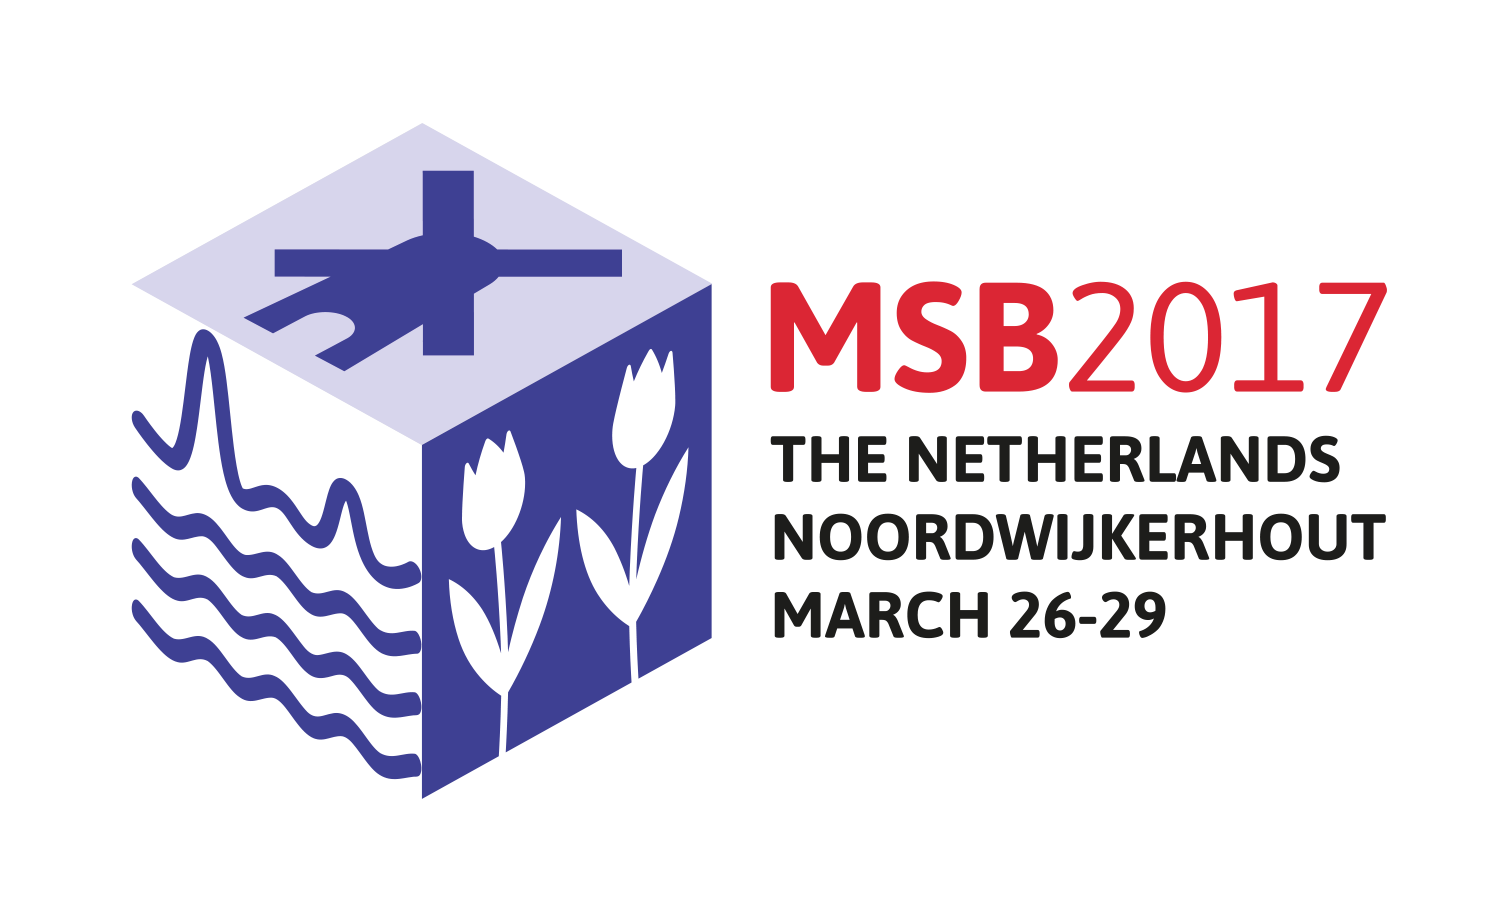 MSB 2017 Embodies An Interactive Forum For The Discussion Of Cutting Edge Research On Frontiers Separation Science Spanning Fundamental